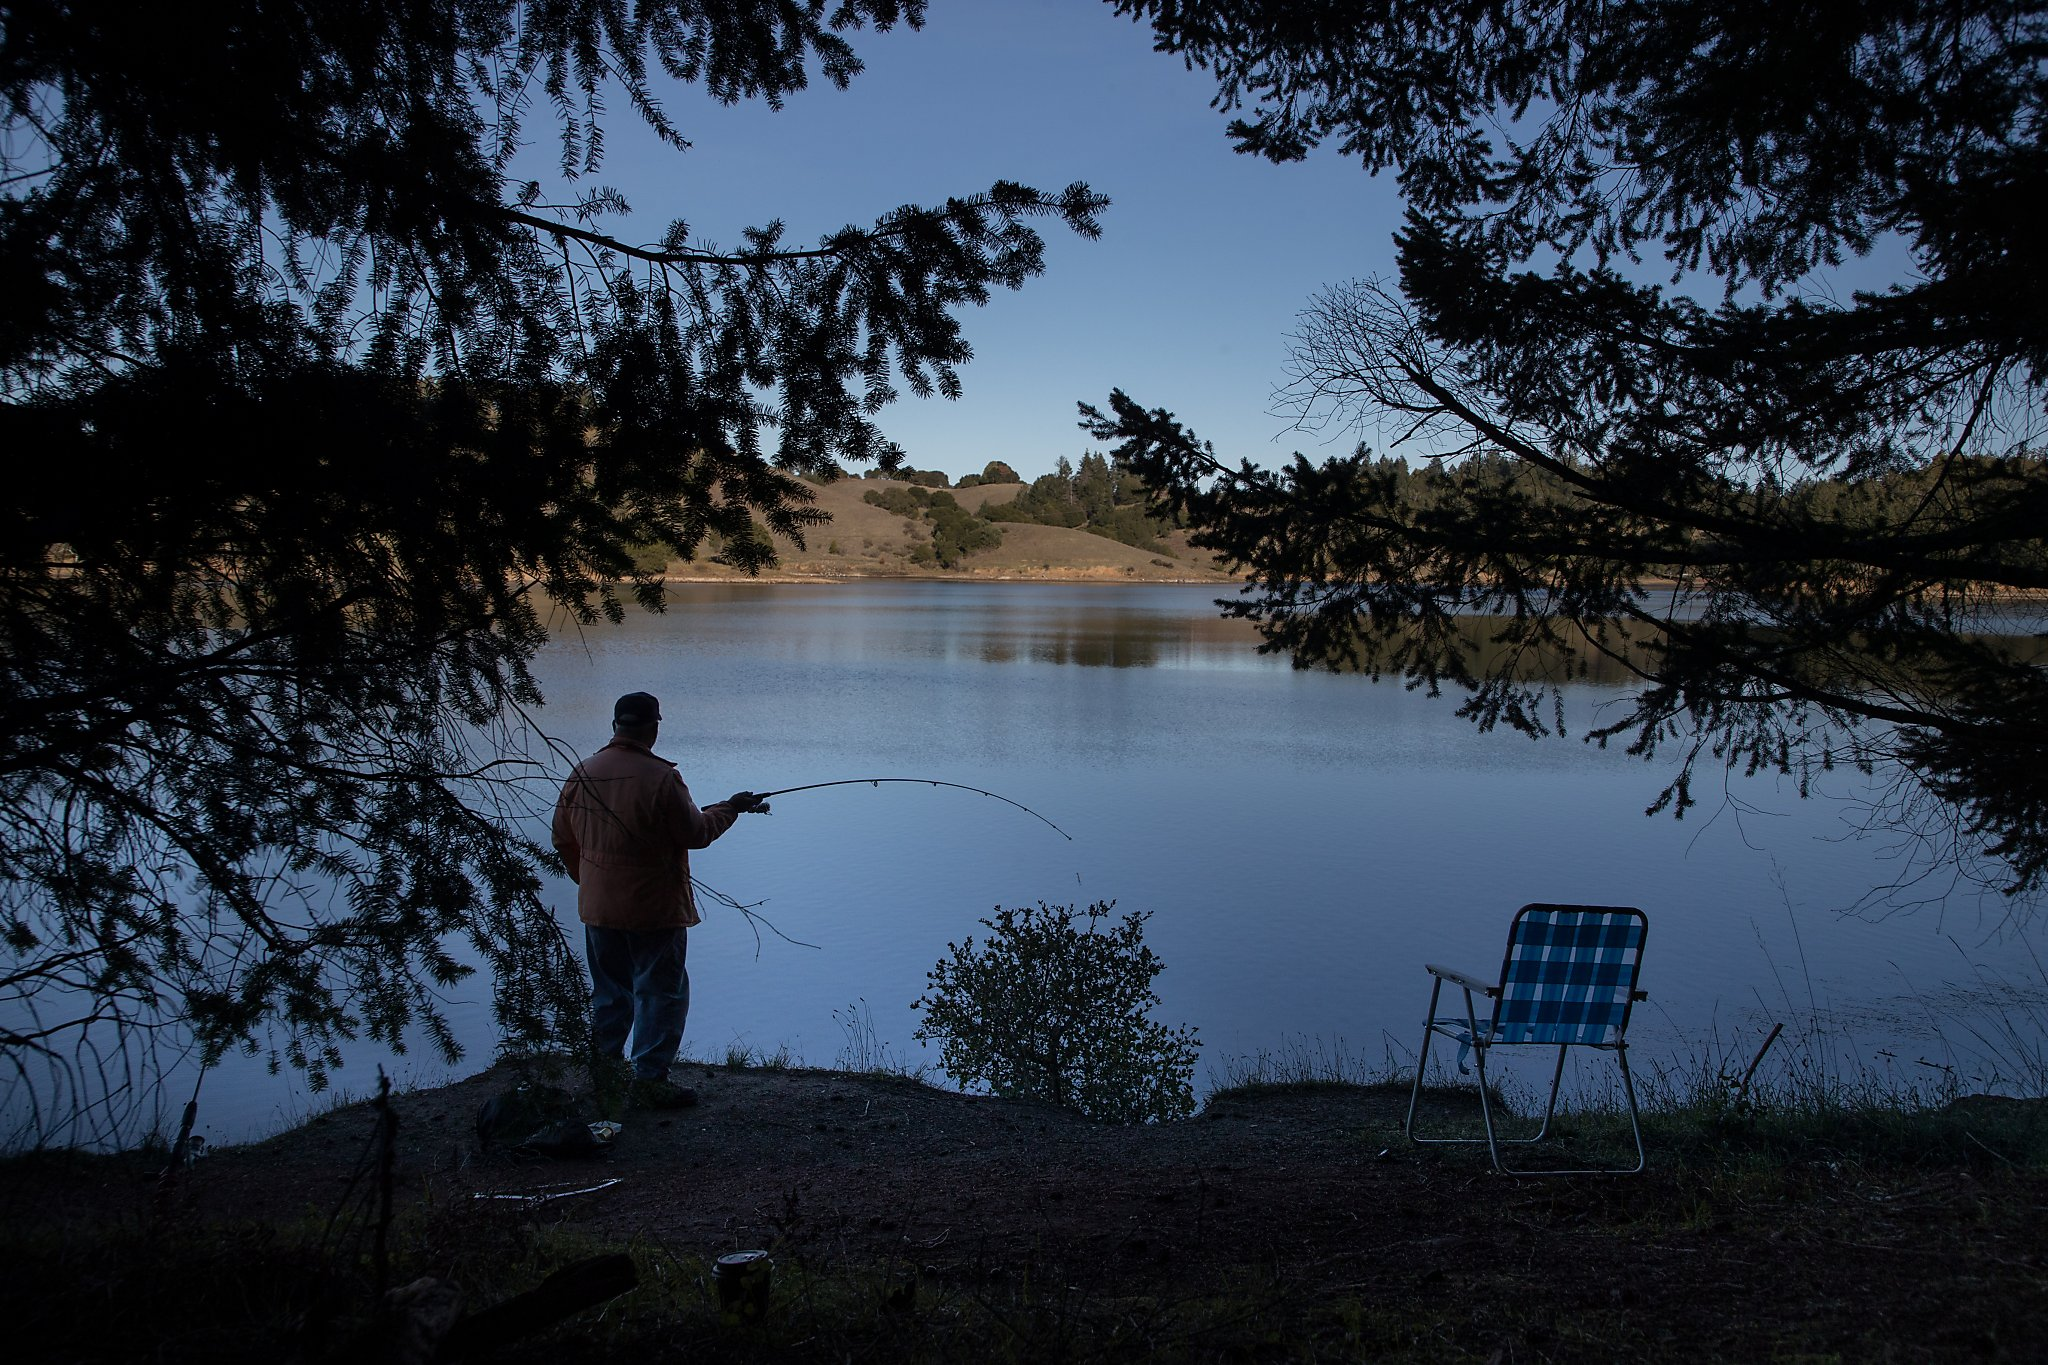 fishing chair rain cover how to install a hanging hammock weekend fills and tops off bay area lakes